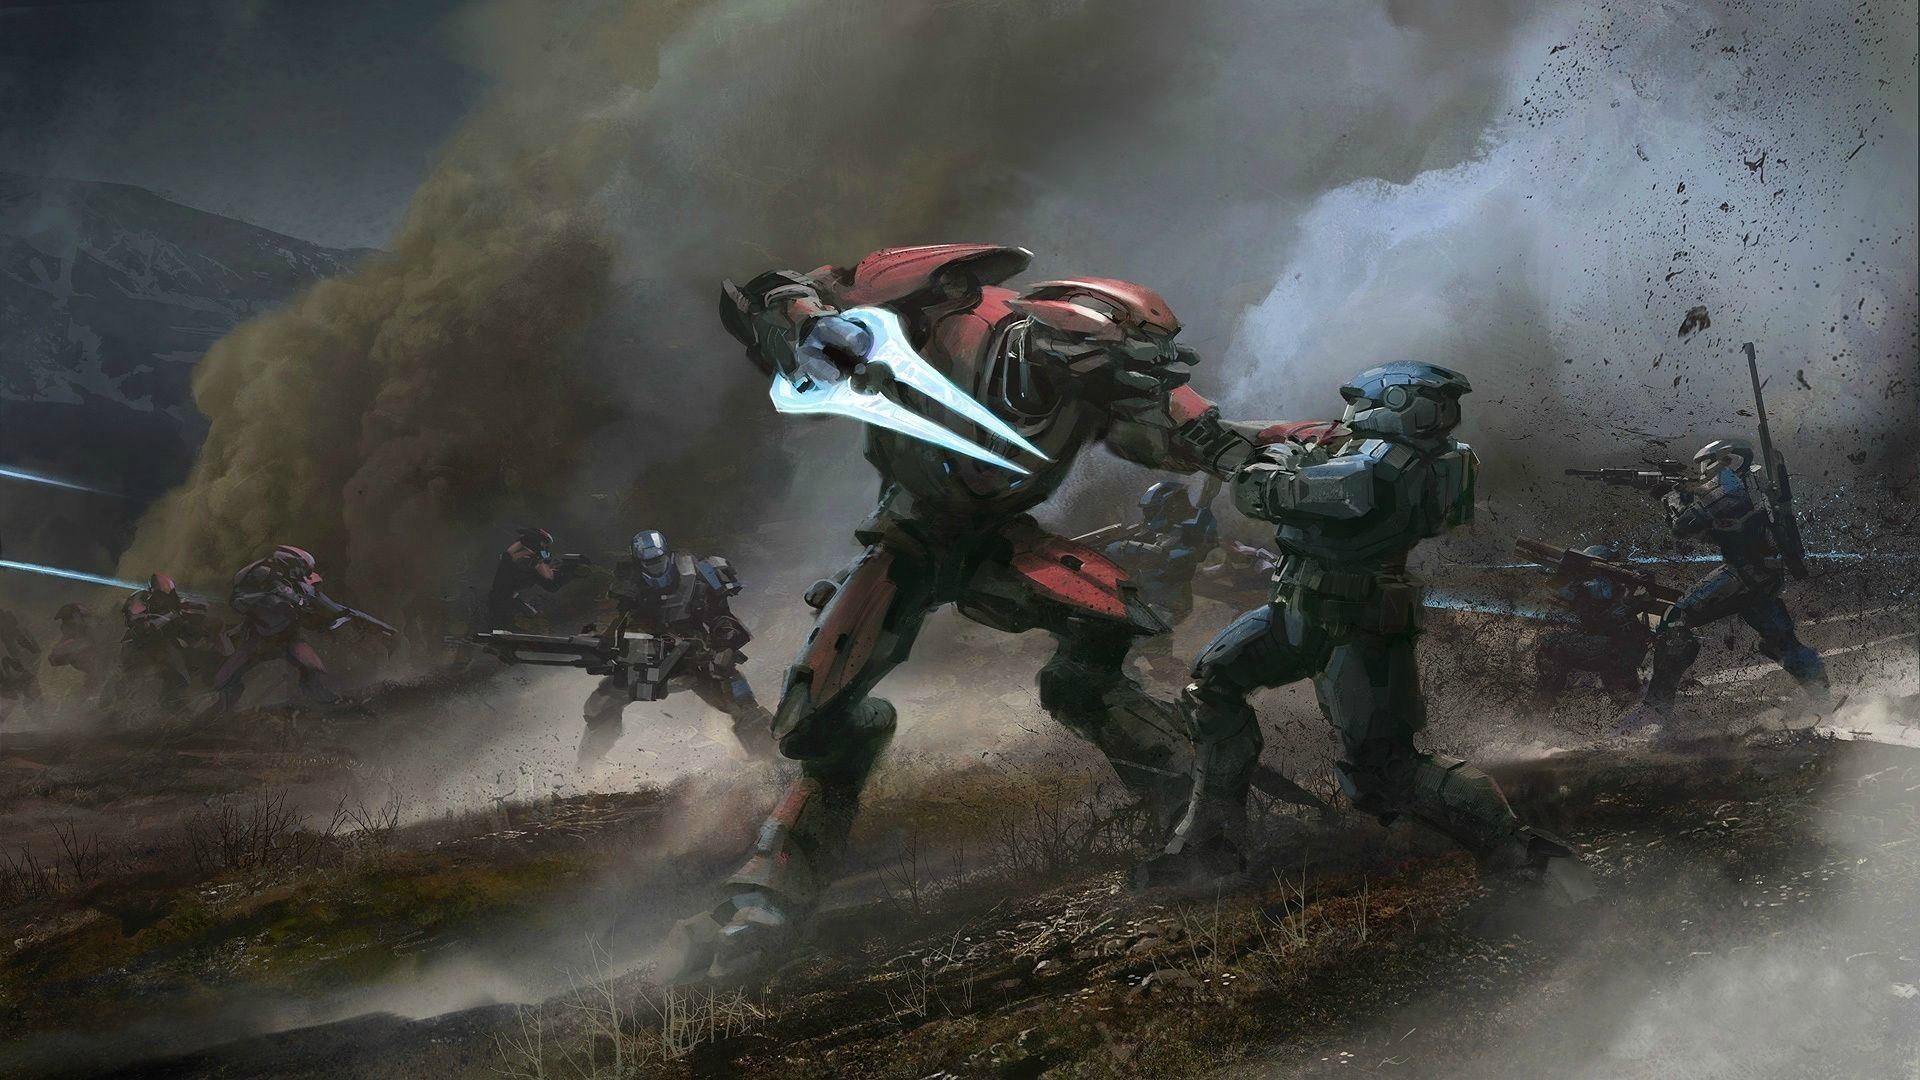 Halo Reach Pc Issues Are Being Looked Into By 343